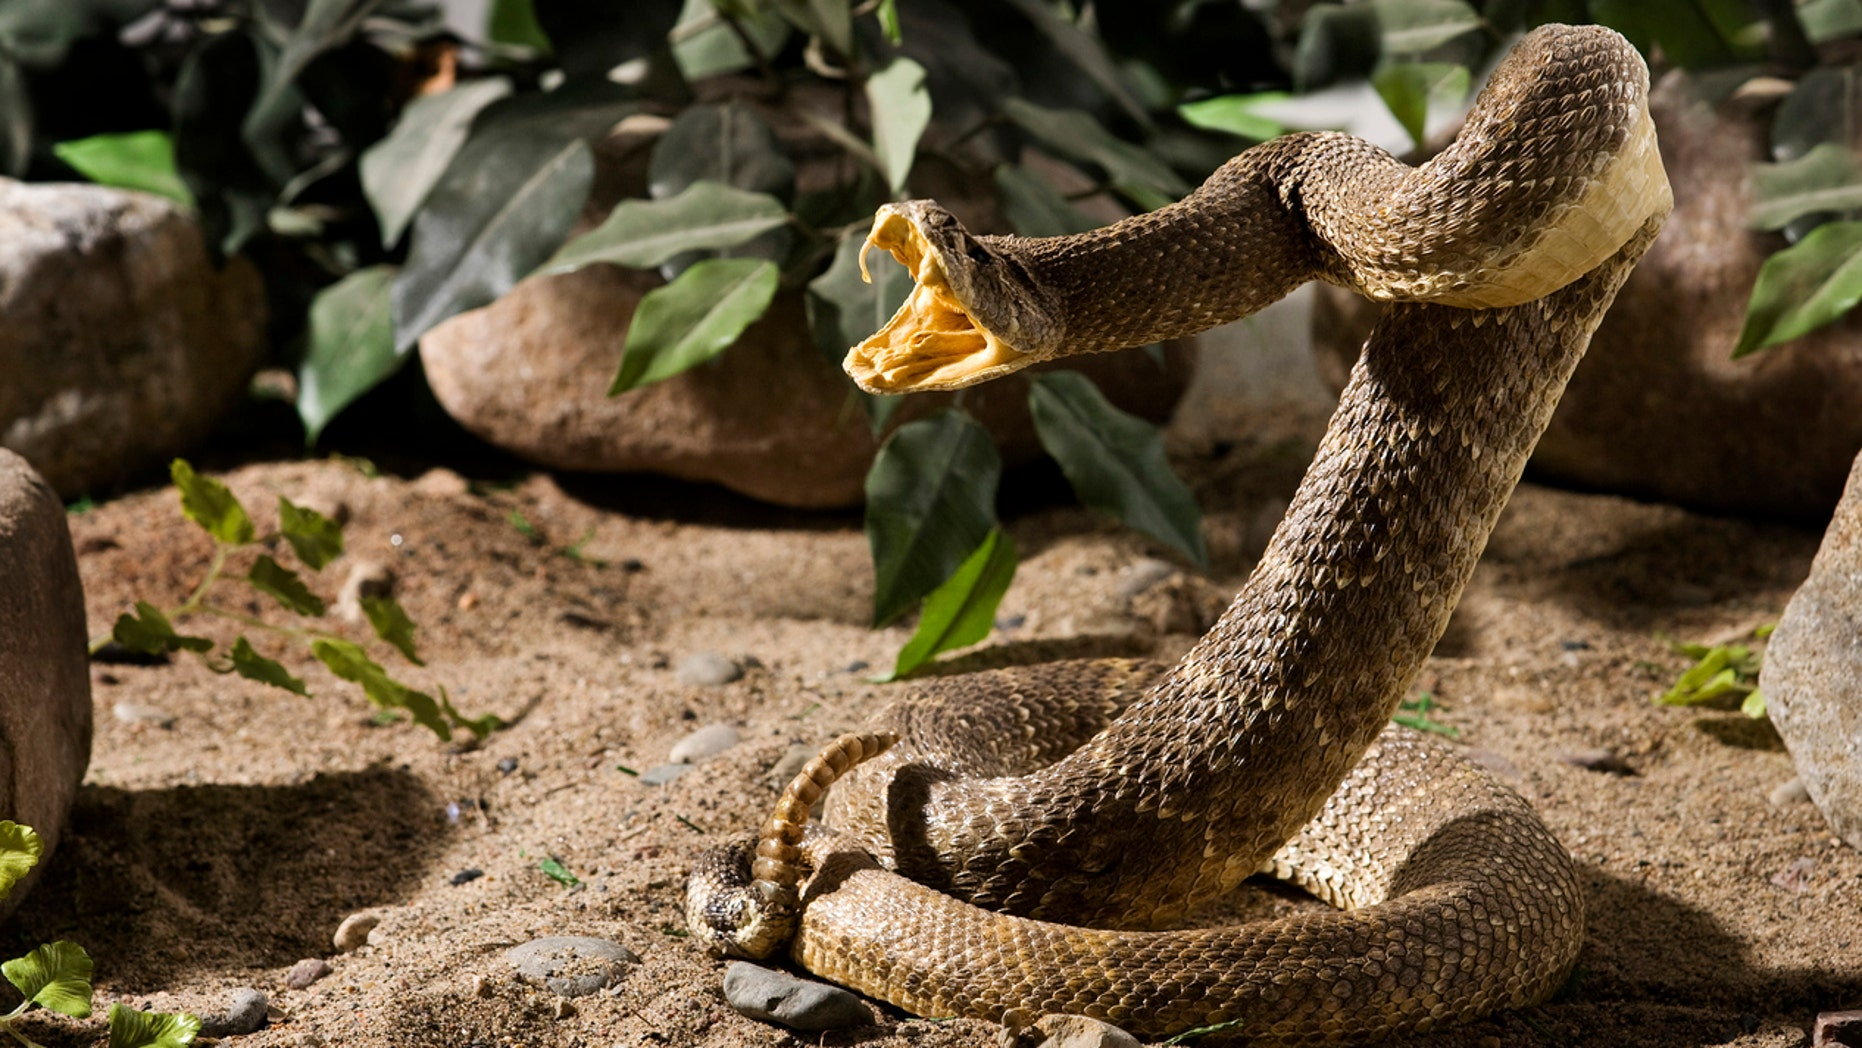 An Arizona man has learned not to play with snakes anymore.